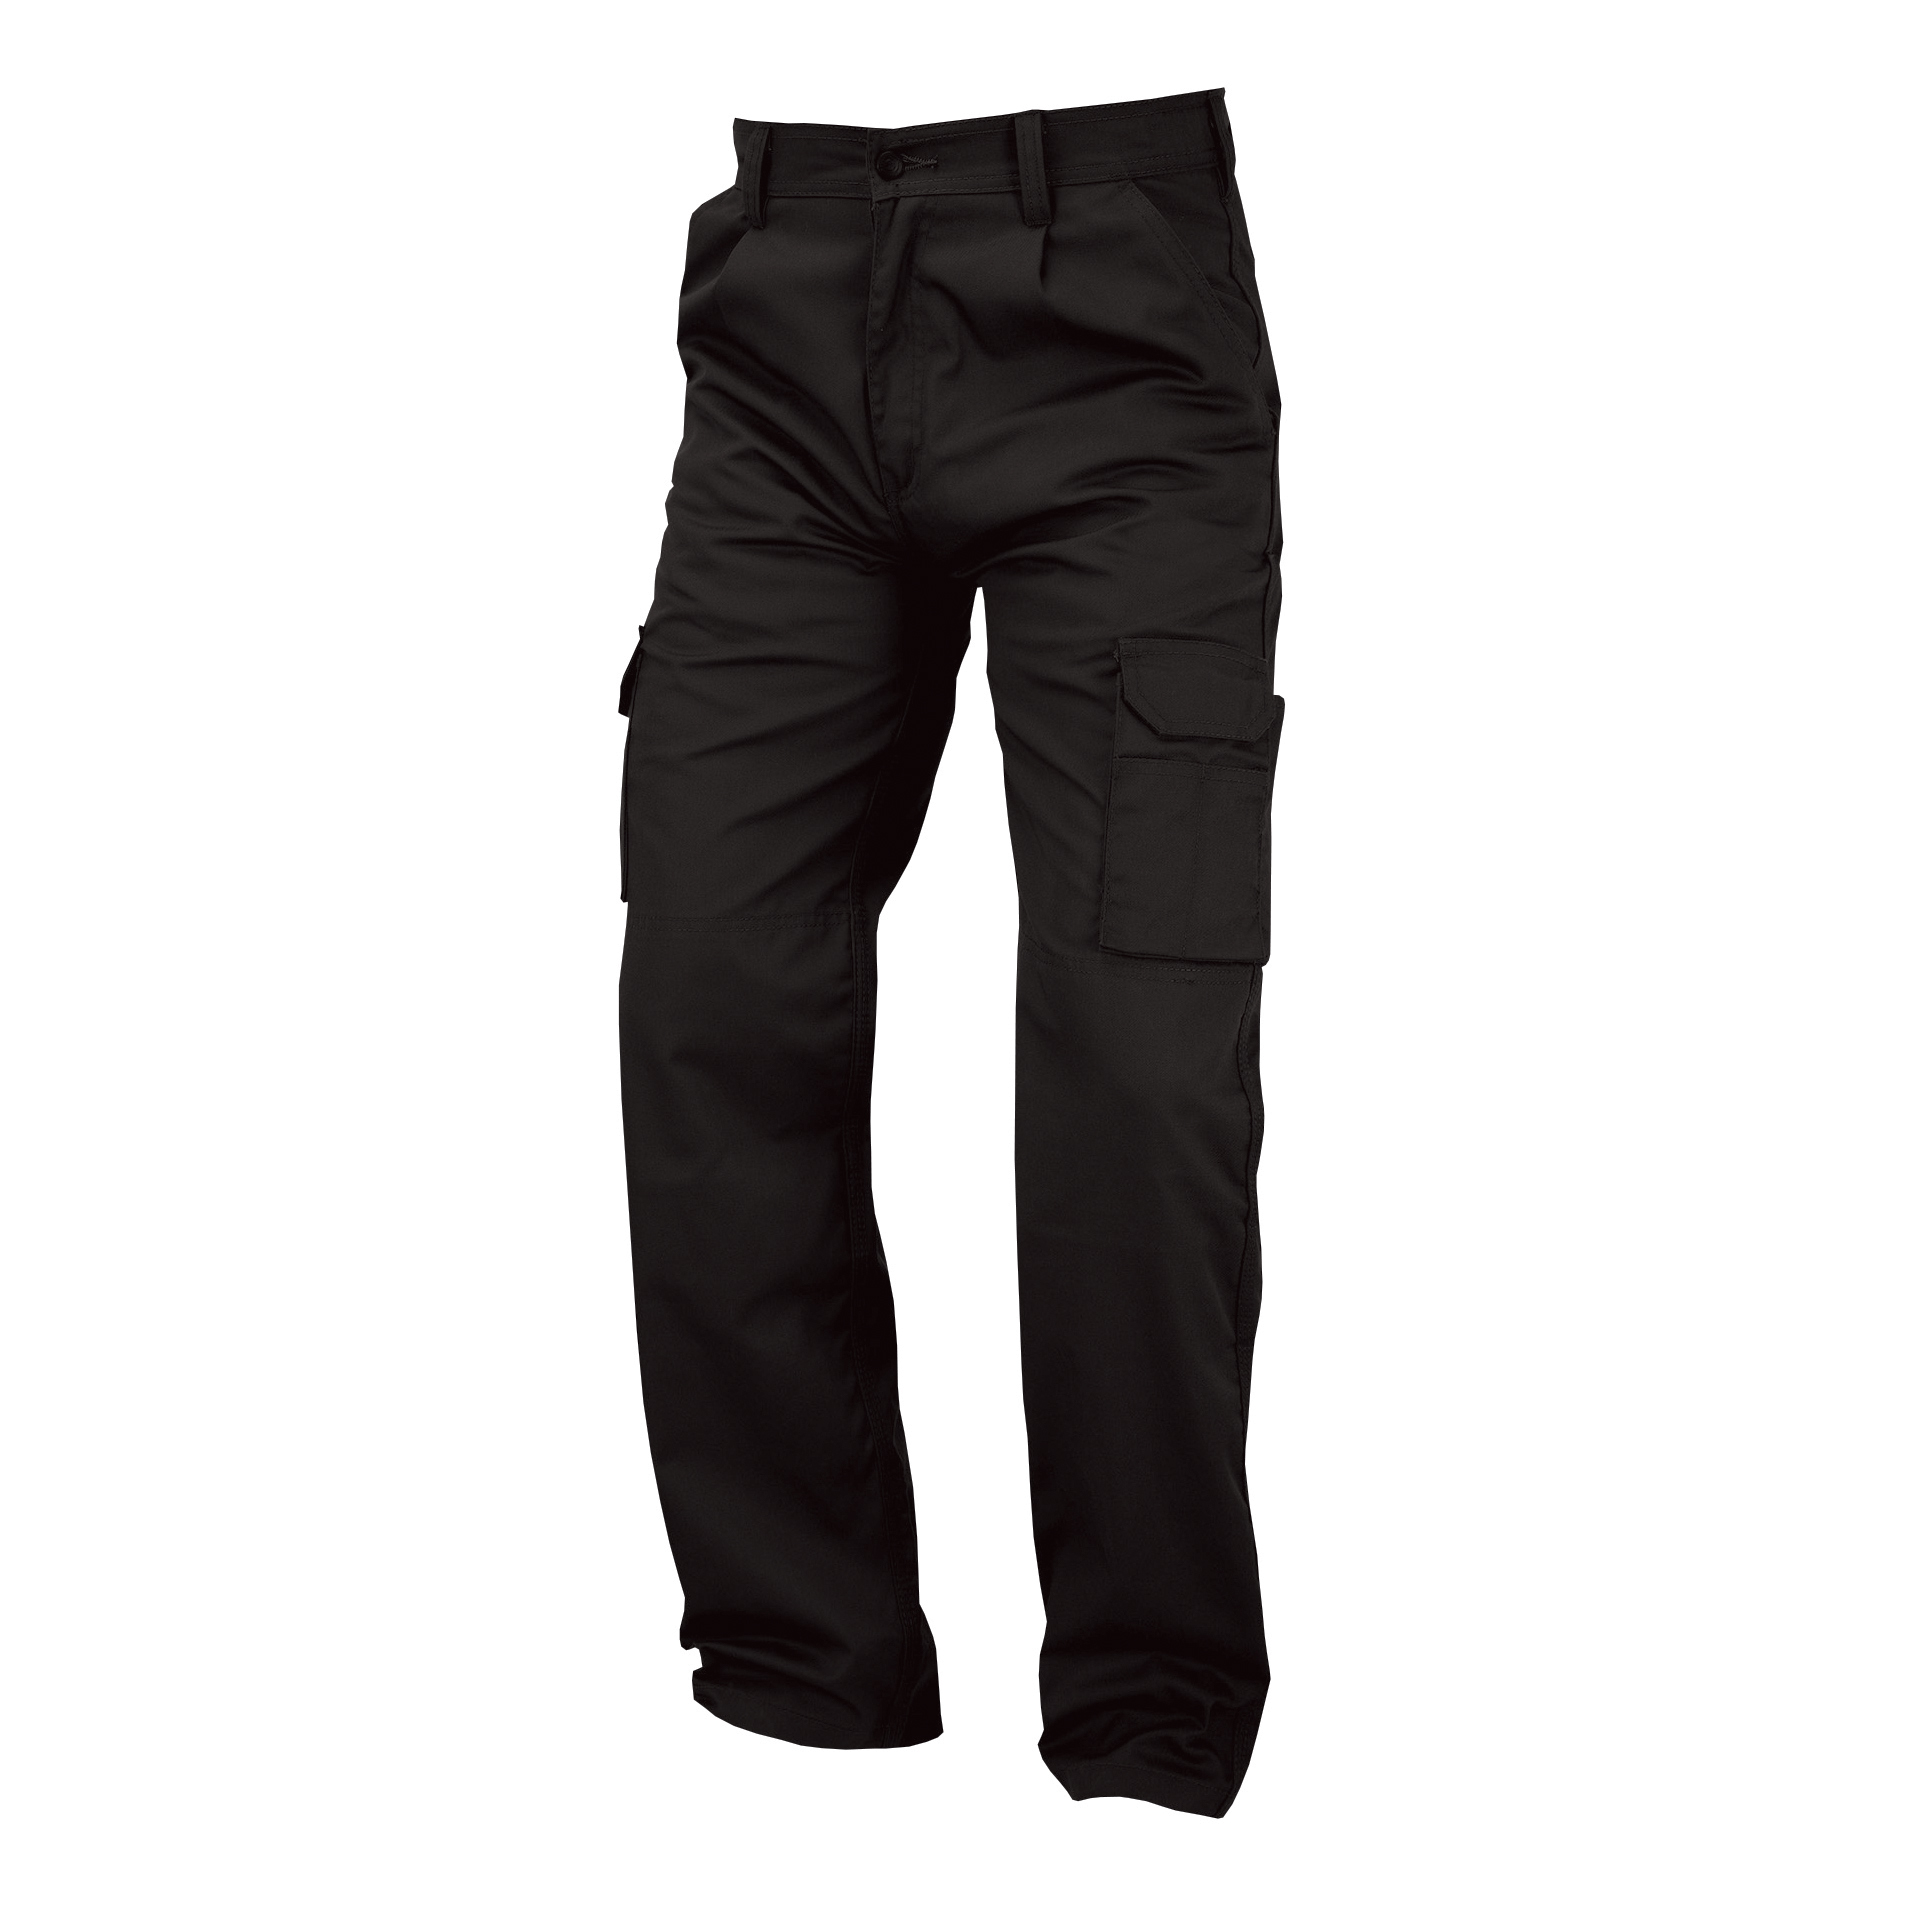 Combat Trouser Multi-functional Waist 42in Leg 29in Black Ref PCTHWBL42S *Approx 3 Day Leadtime*